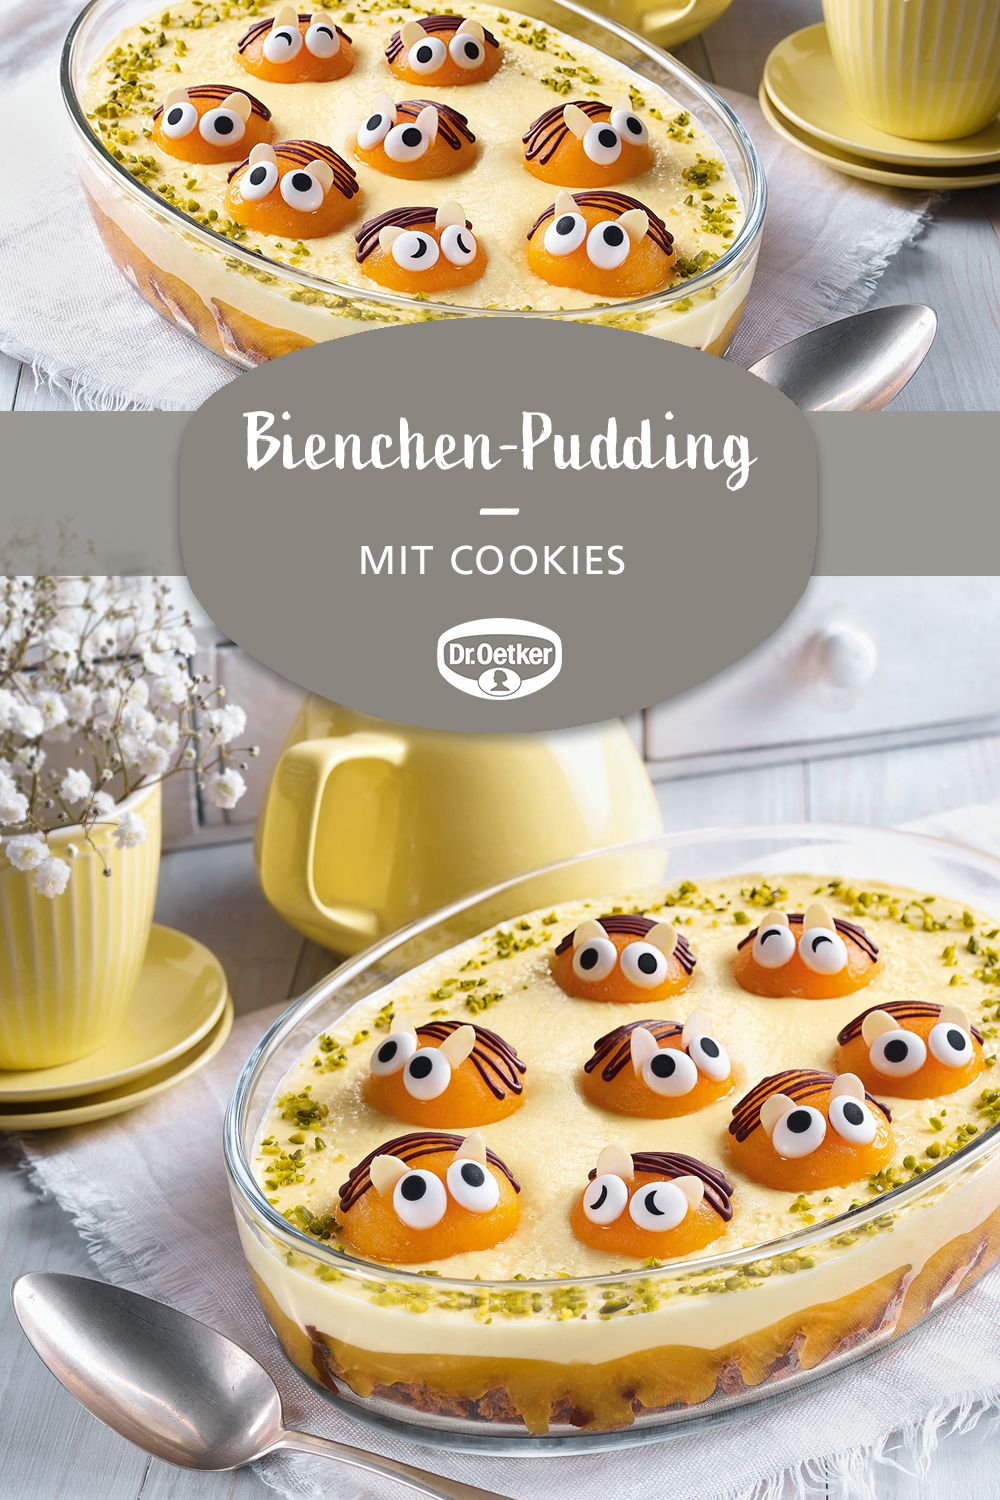 Photo of Bienchen-Pudding mit Cookies